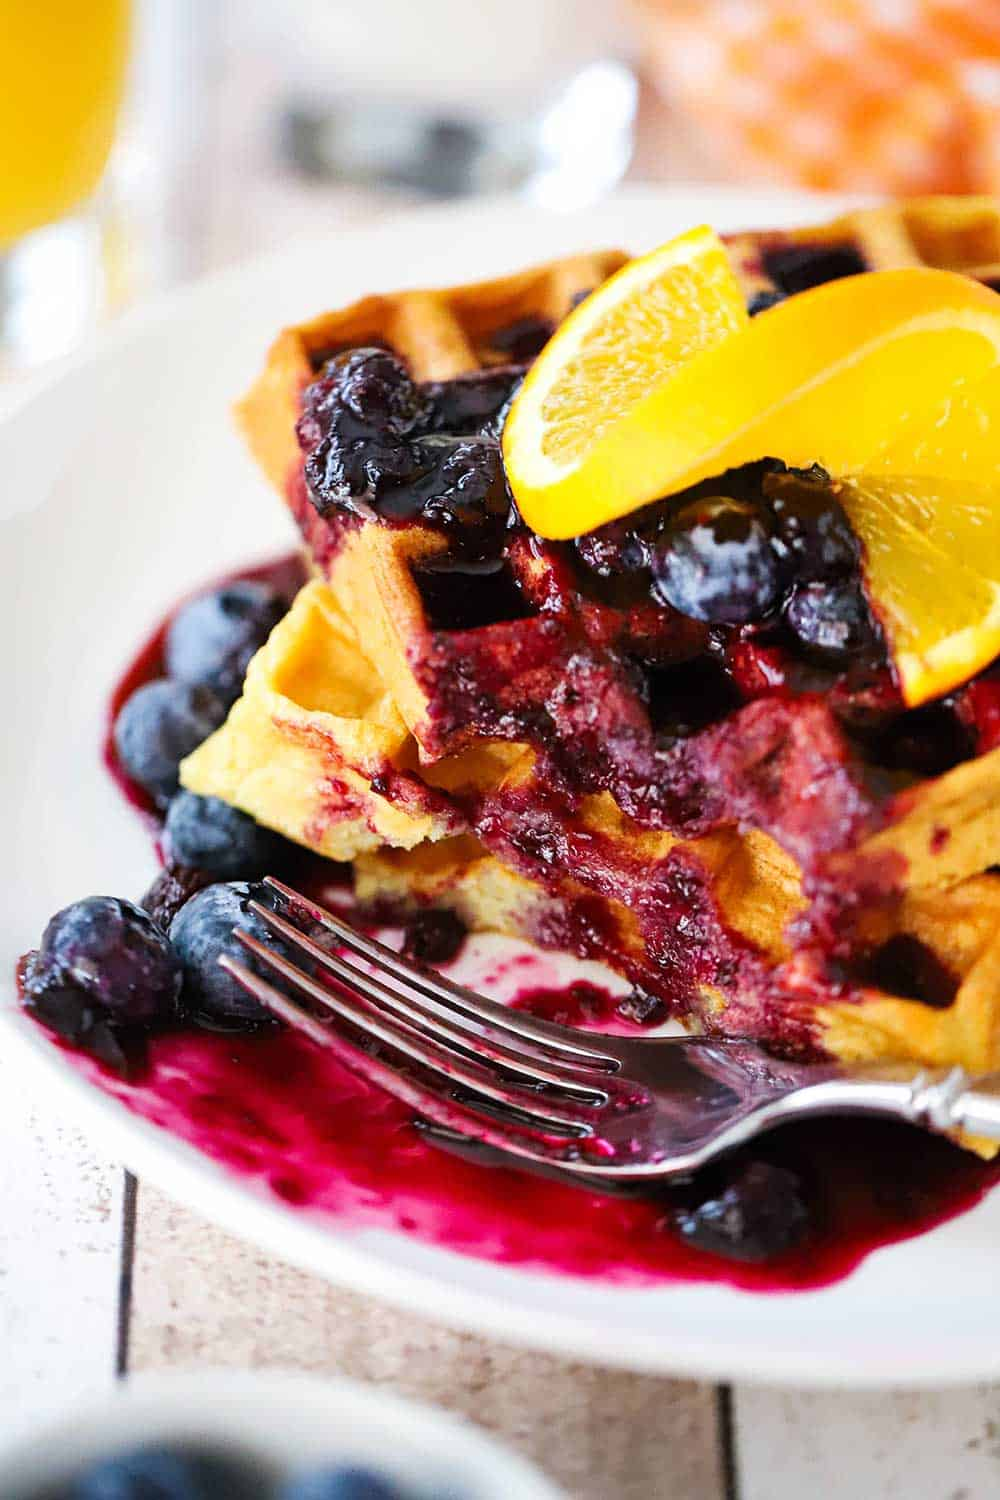 A white plate filled with a stack of buttermilk waffles and blueberry sauce with a bite take out of it.